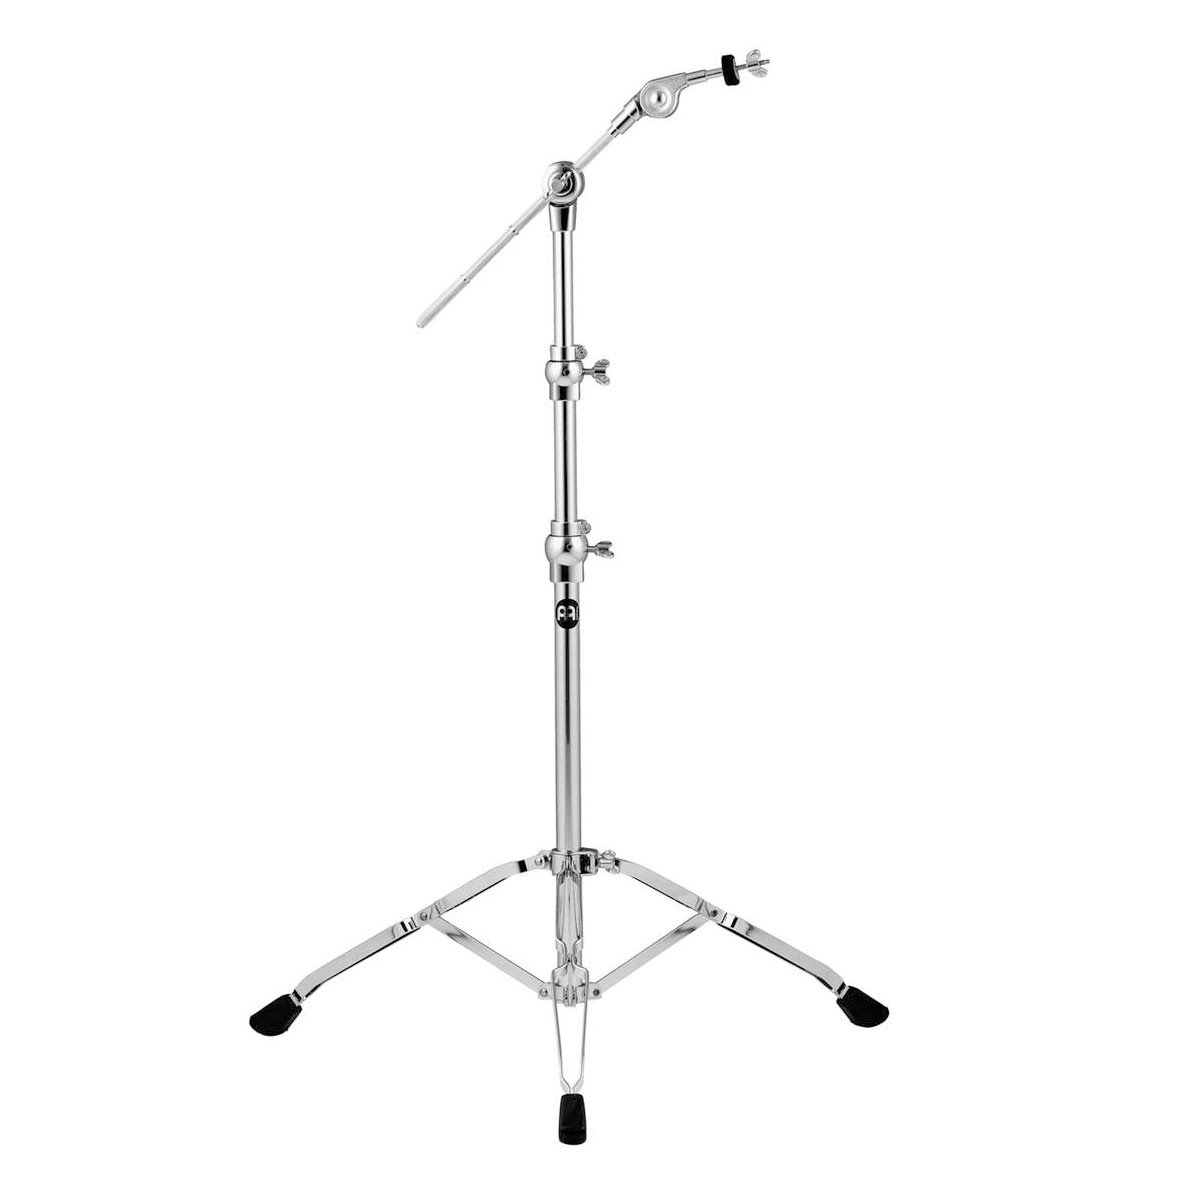 Meinl Chimes Stand